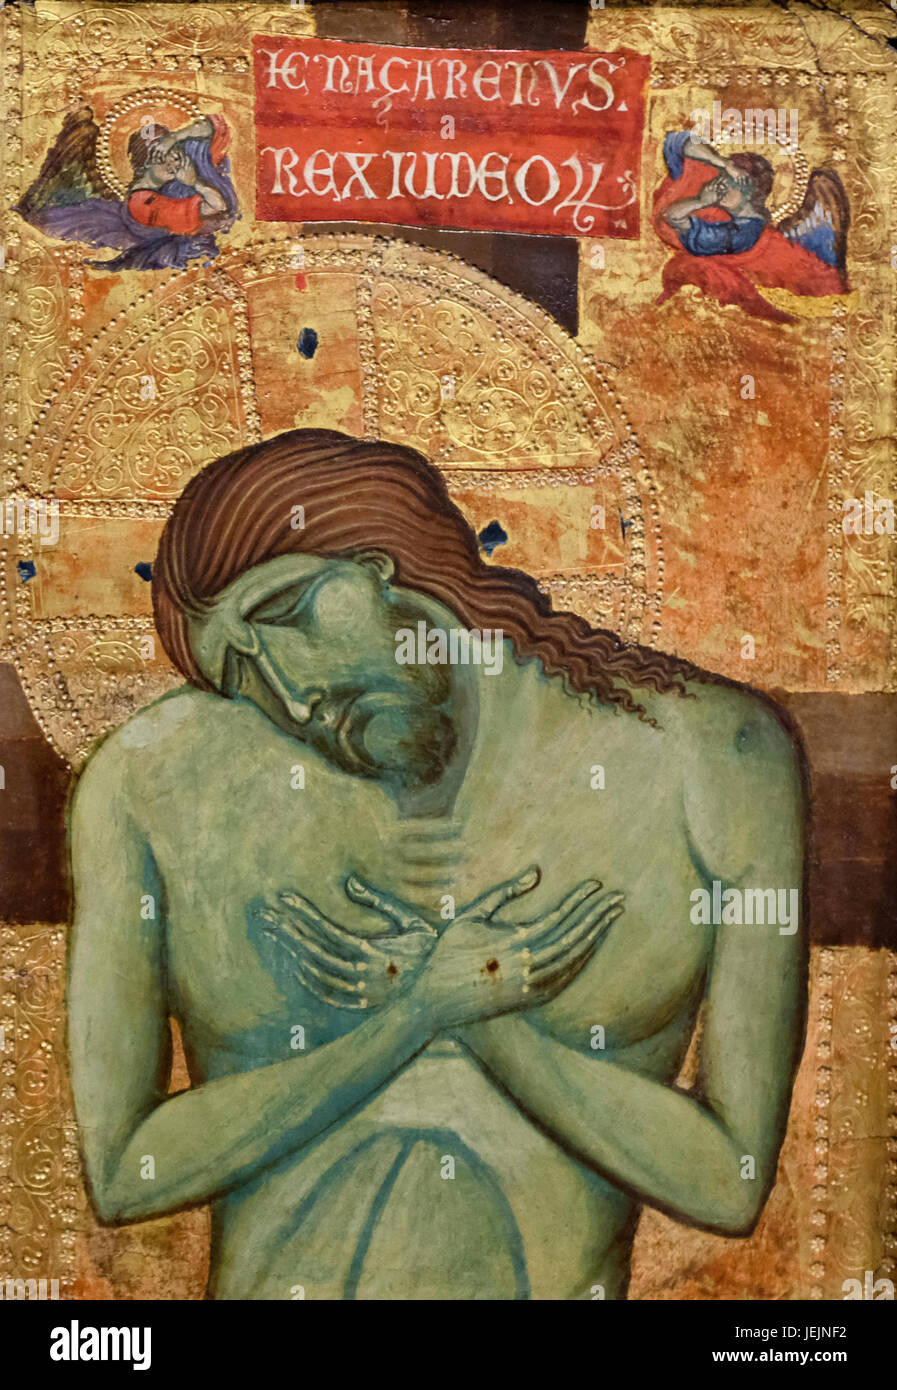 The Man of Sorrows - Jesus Christ Crucified - Unknown Artist - 13th century Stock Photo